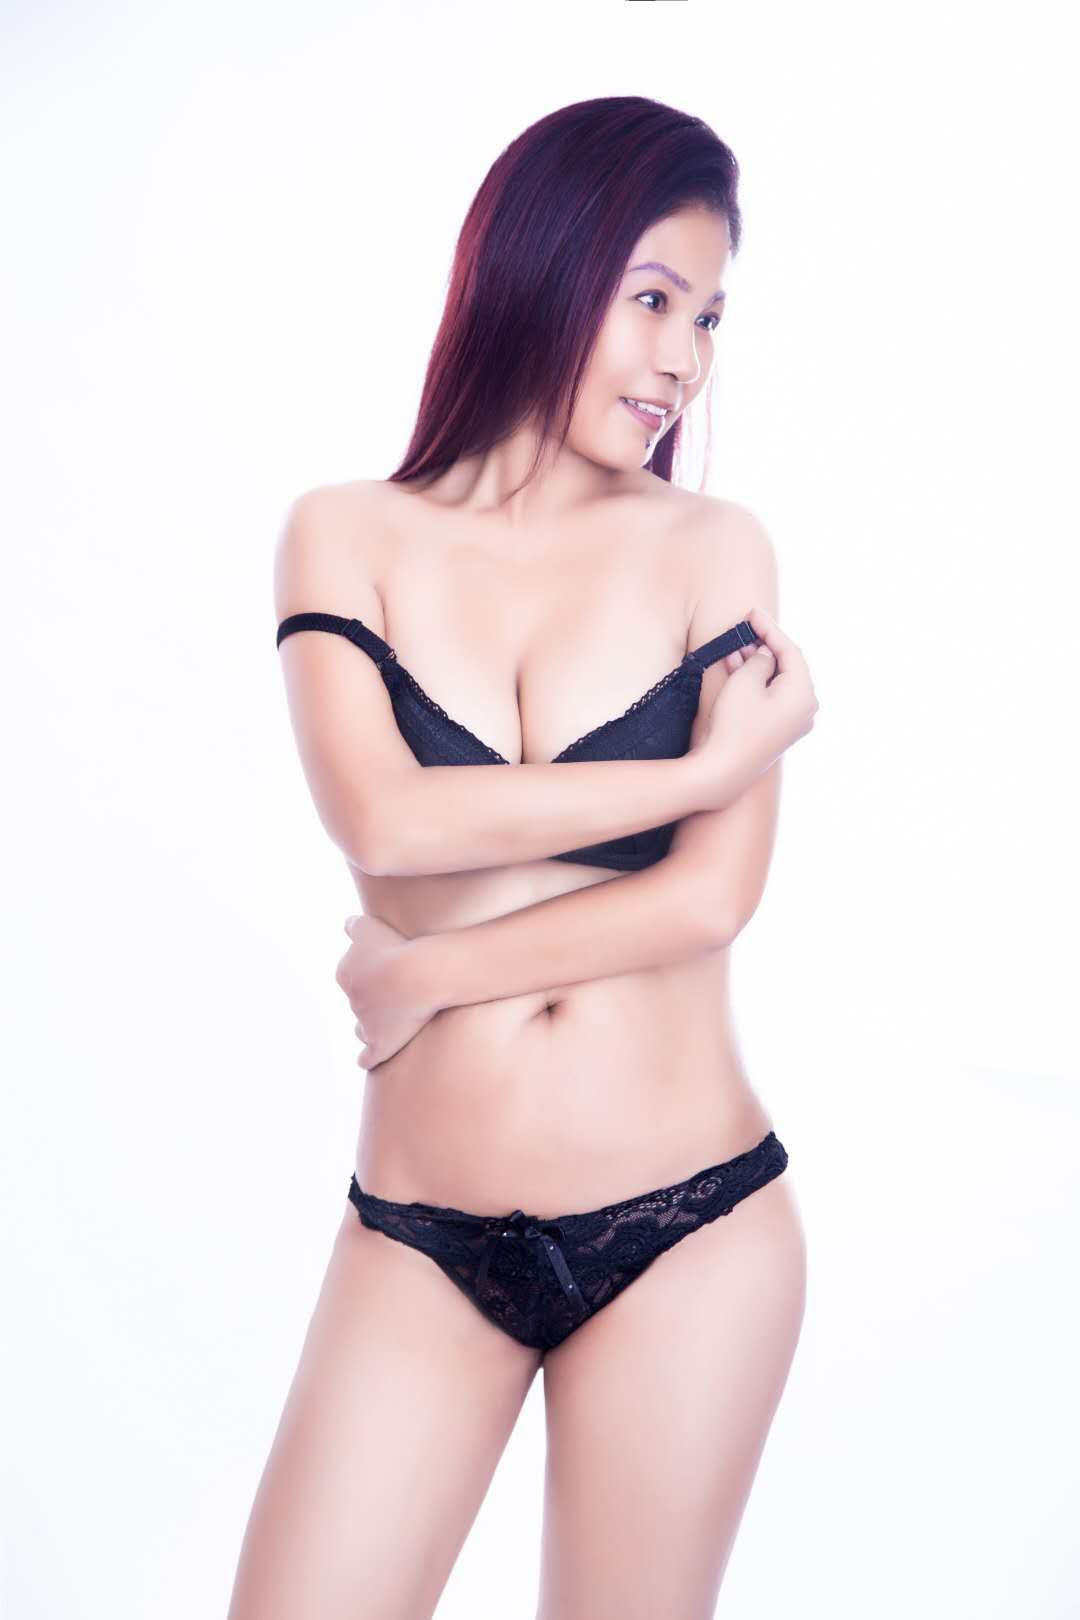 New Zealand Escorts-Monika-asian-escorts-Private-Auckland-escorts-massey-Escorts-2